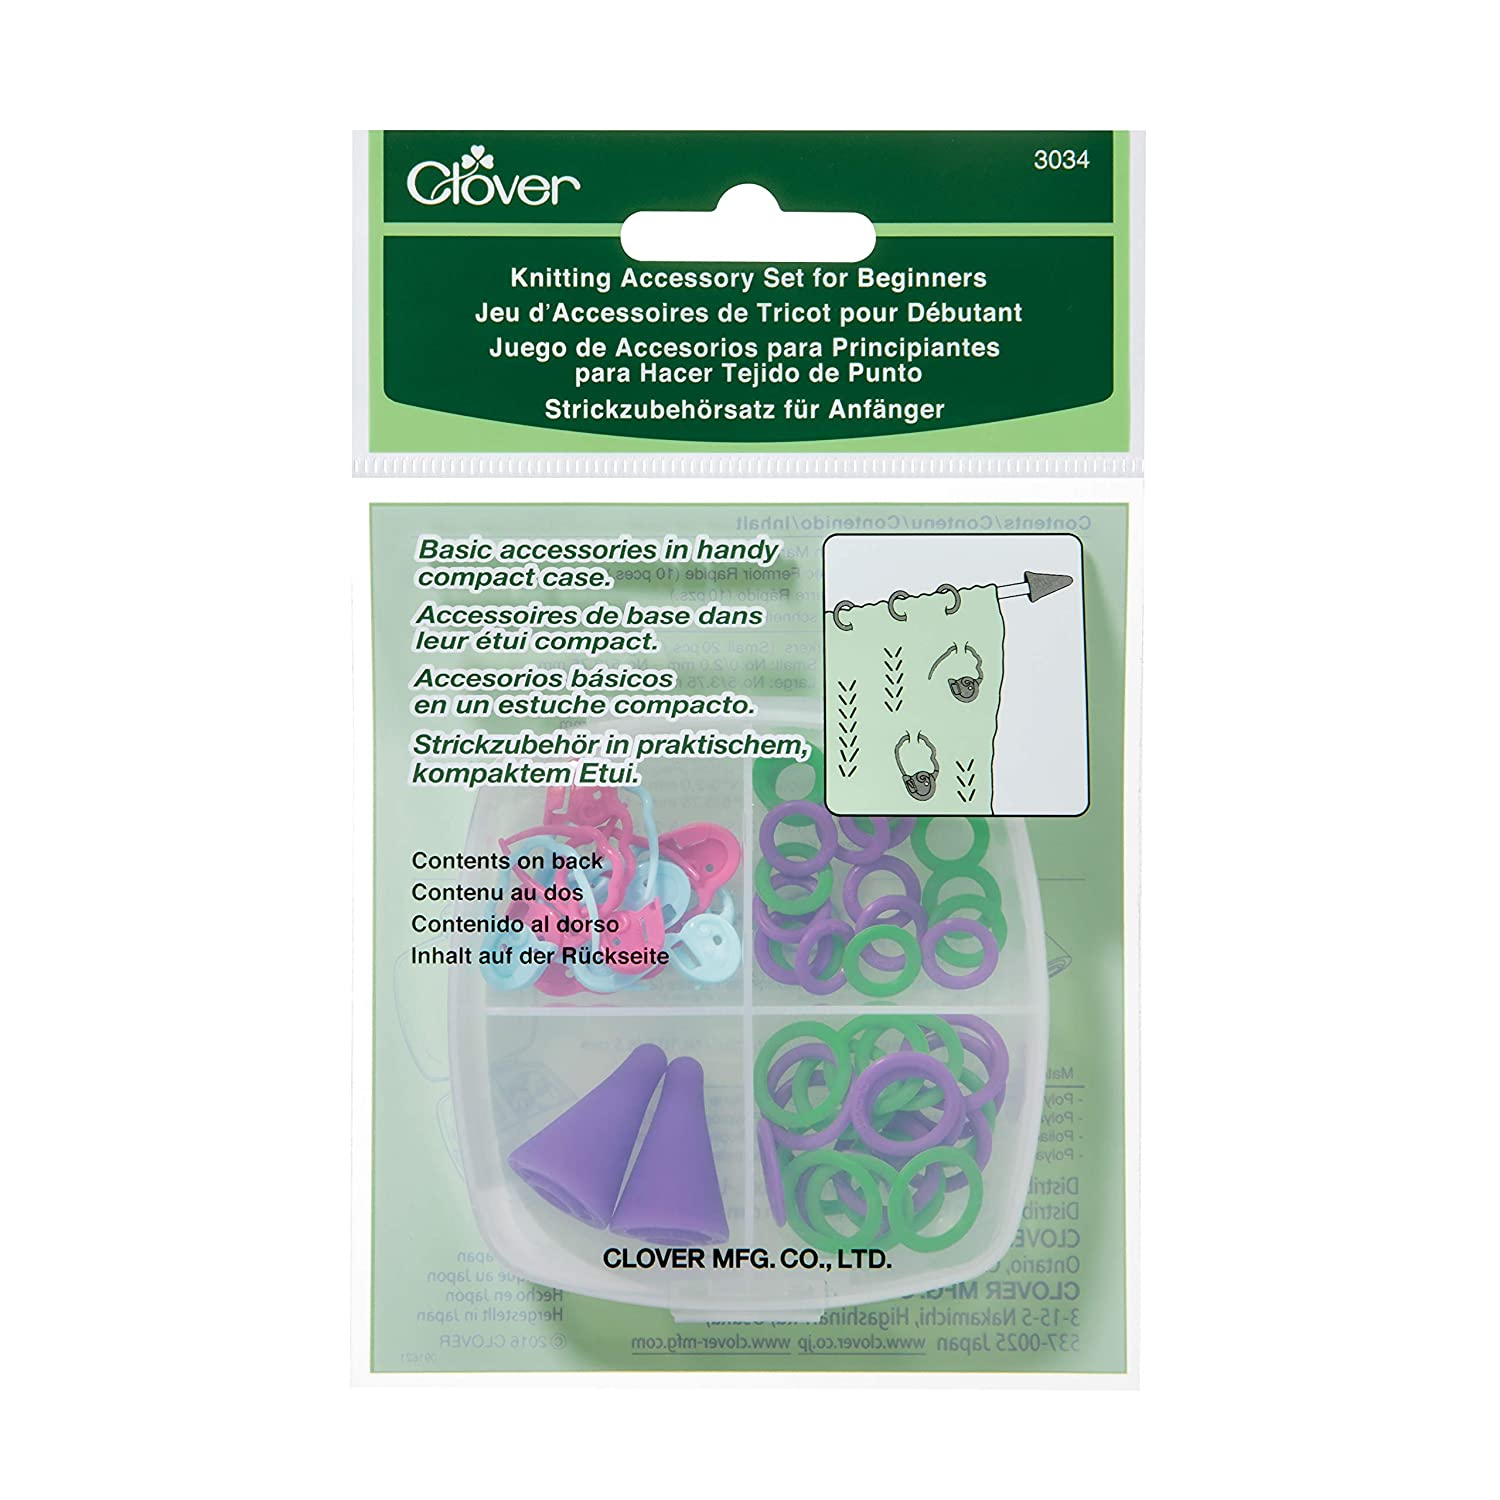 Amazon.com: Clover Knitting Accessory Set for Beginners Multi